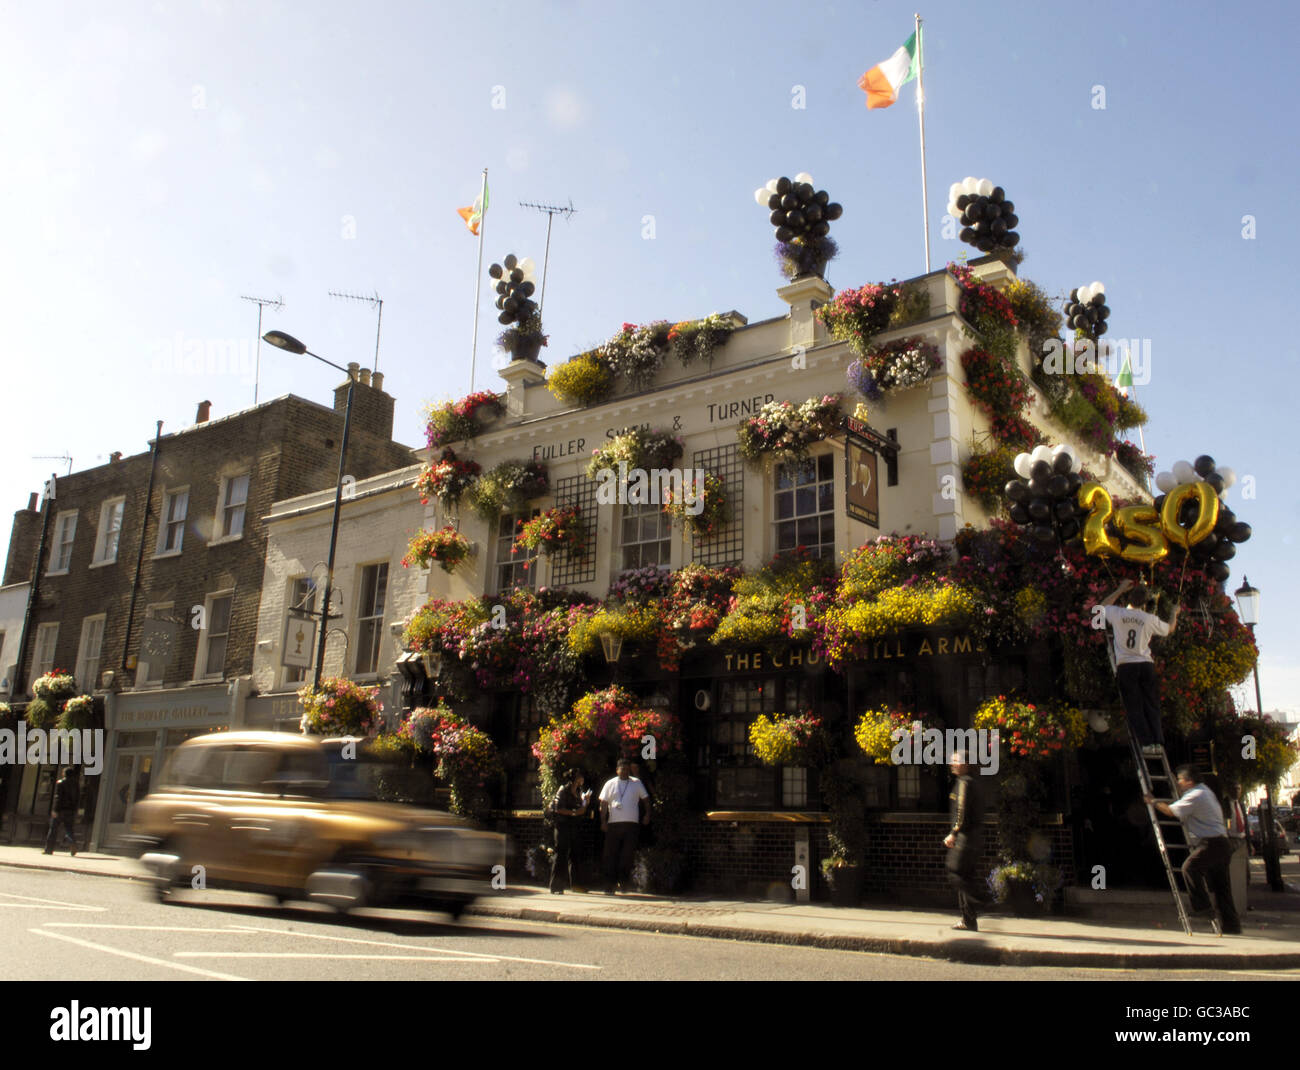 250th anniversary of Guinness - Stock Image